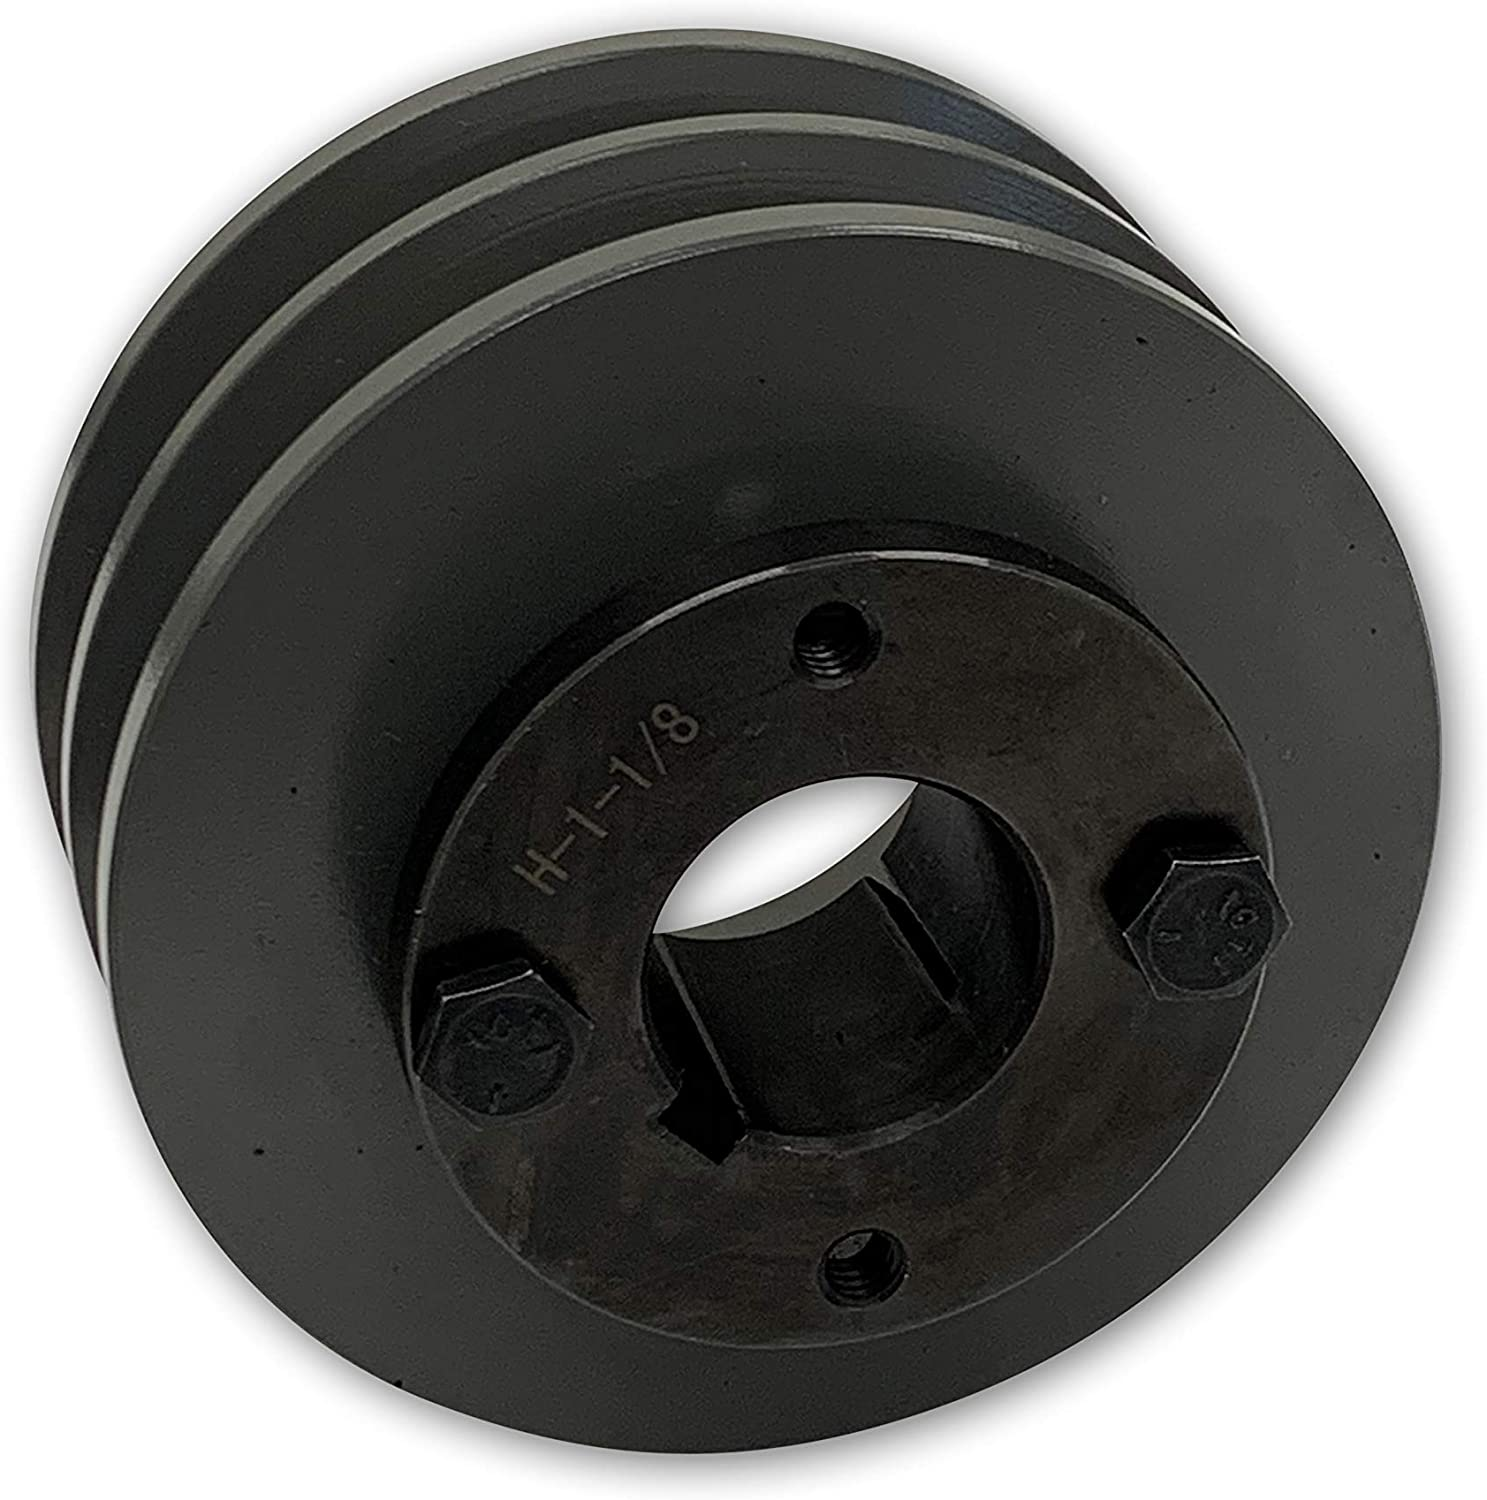 For 3//8 and 1//2 Top Width 3L // A//AK // 4L // 4LK Section V Belts BUSHING INCLUDED 2 Groove Pulley Double Groove 10.25 Cast Iron Electric Motor H Pulley//Sheave 1.375 Bore 1-3//8 Shaft